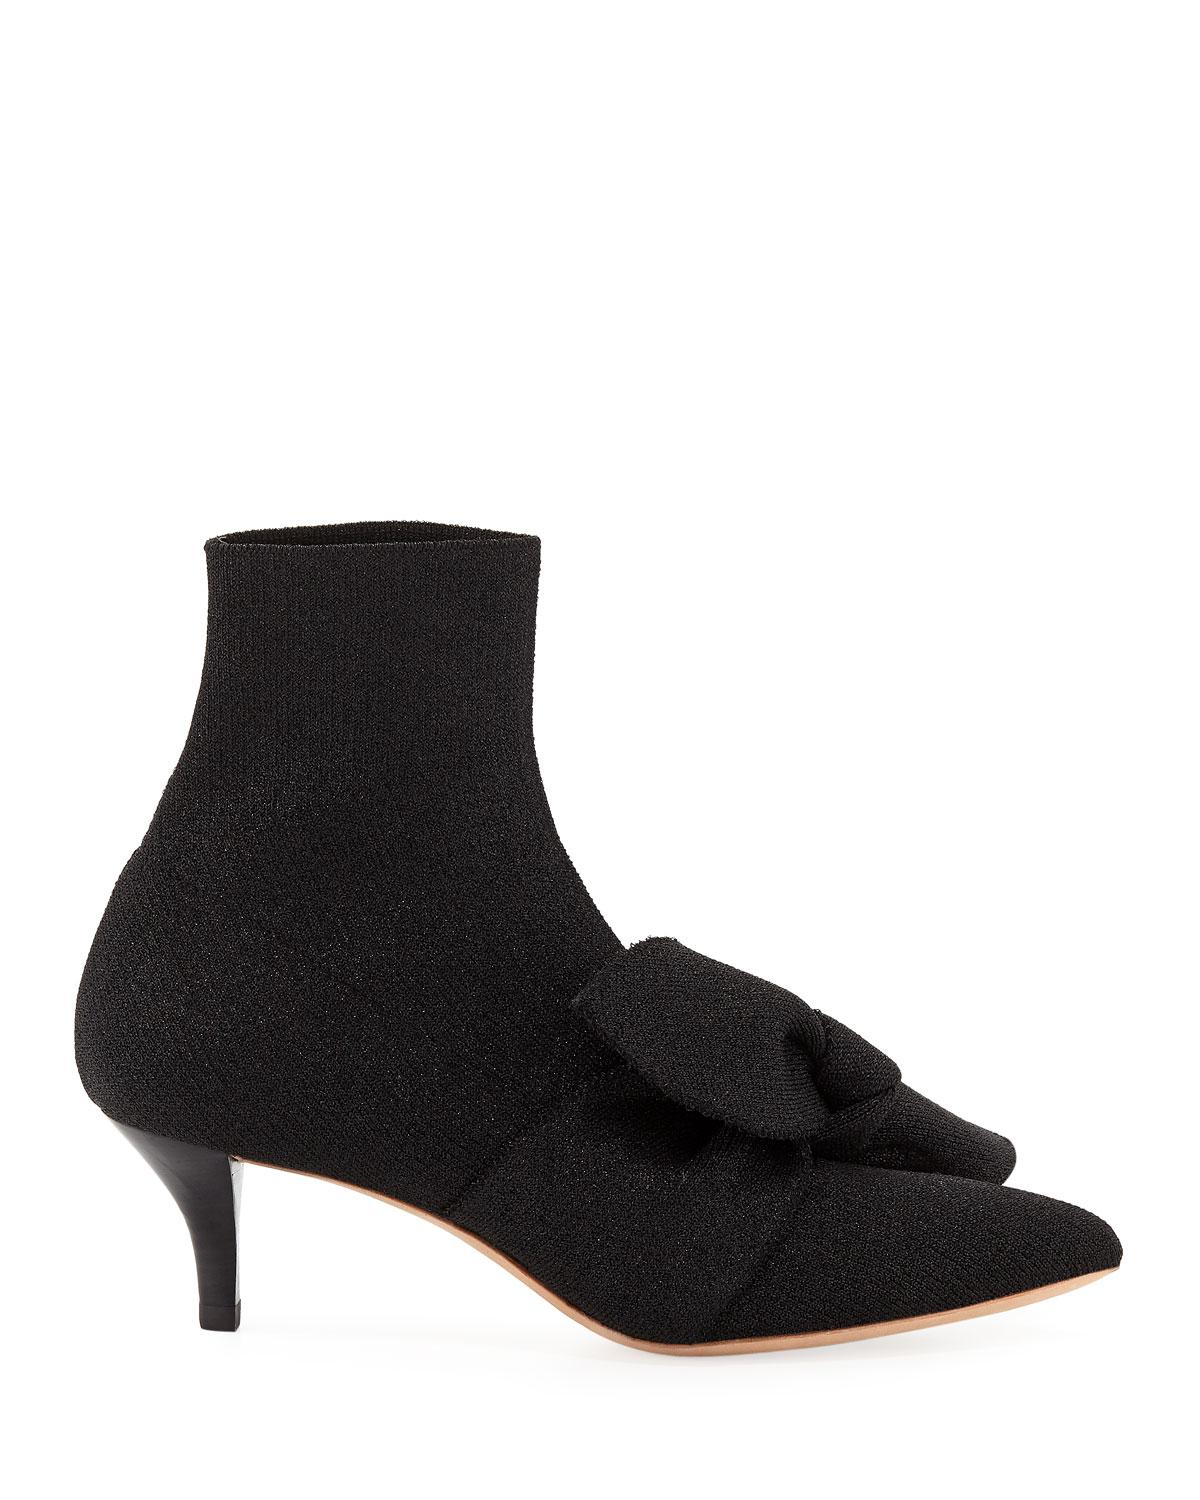 376a9346a6d7 Lyst - Loeffler Randall Kassidy Stretch Kitten-heel Booties With Bow in  Black